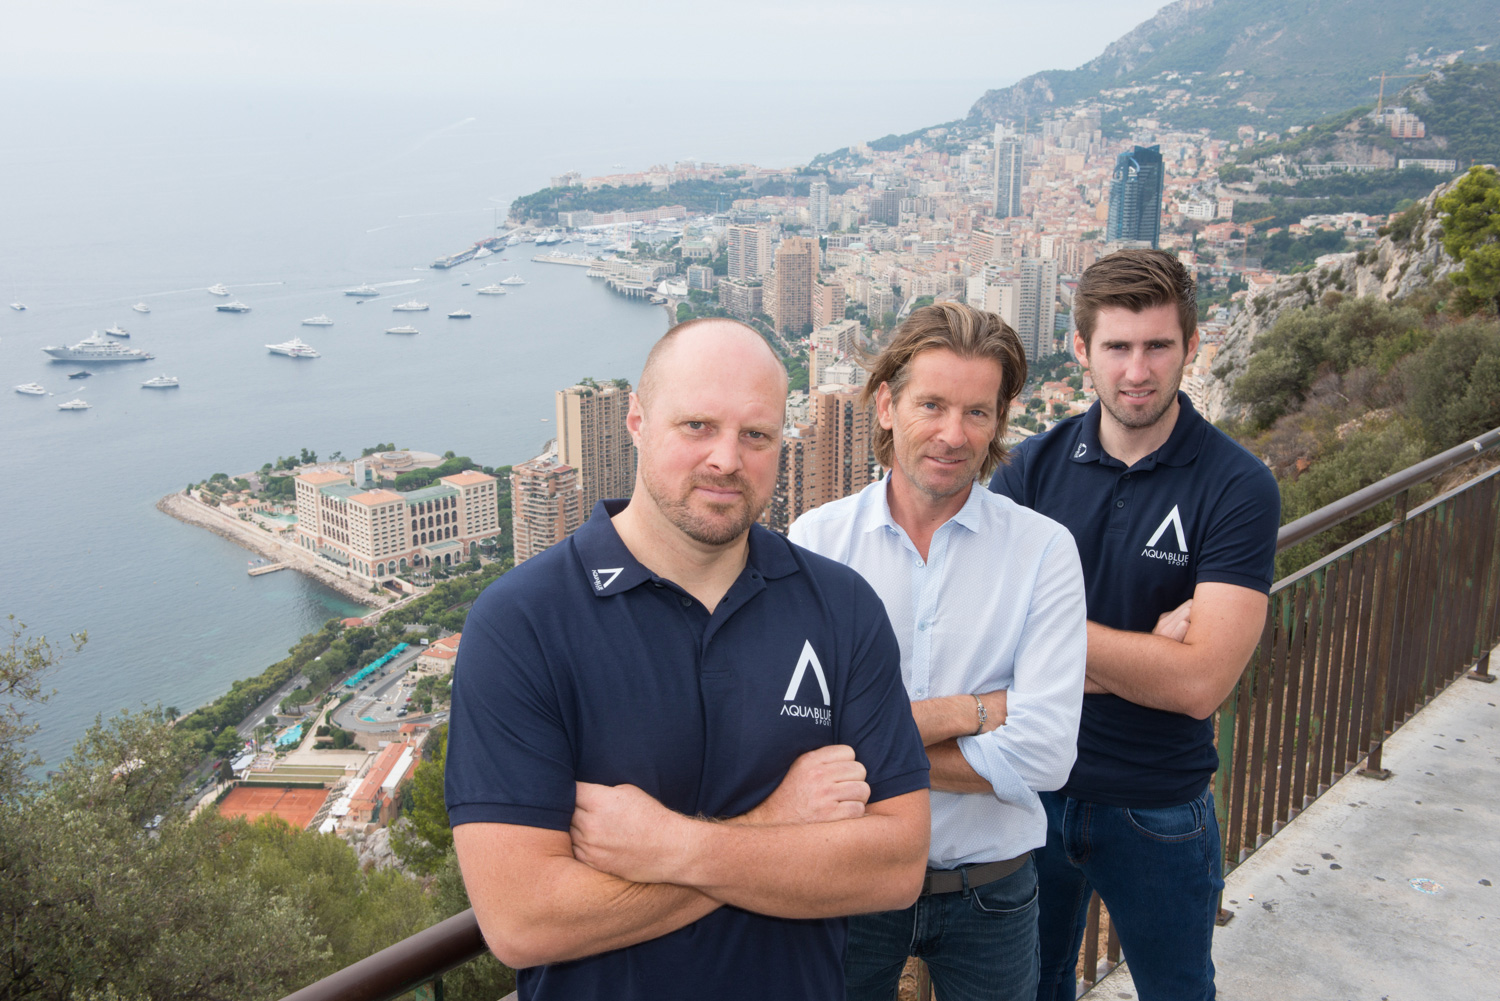 Aqua Blue Sport founder Rick Delaney (centre) with Director of Performance Operations Leigh Bryan (l) and General Manager Stephen Moore.